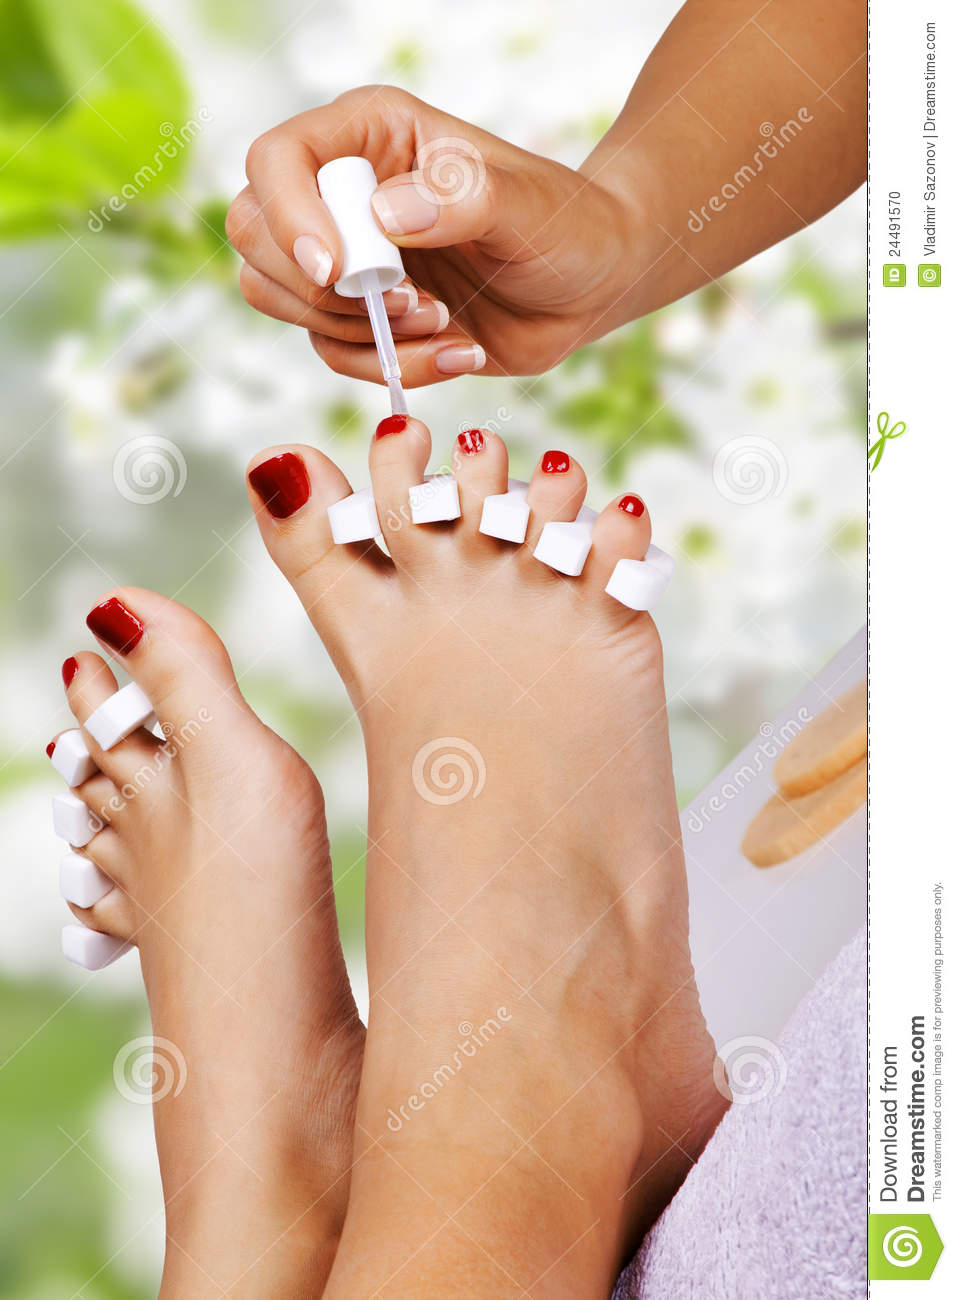 Pedicure dans le salon de station thermale photo stock for Salon de pedicure